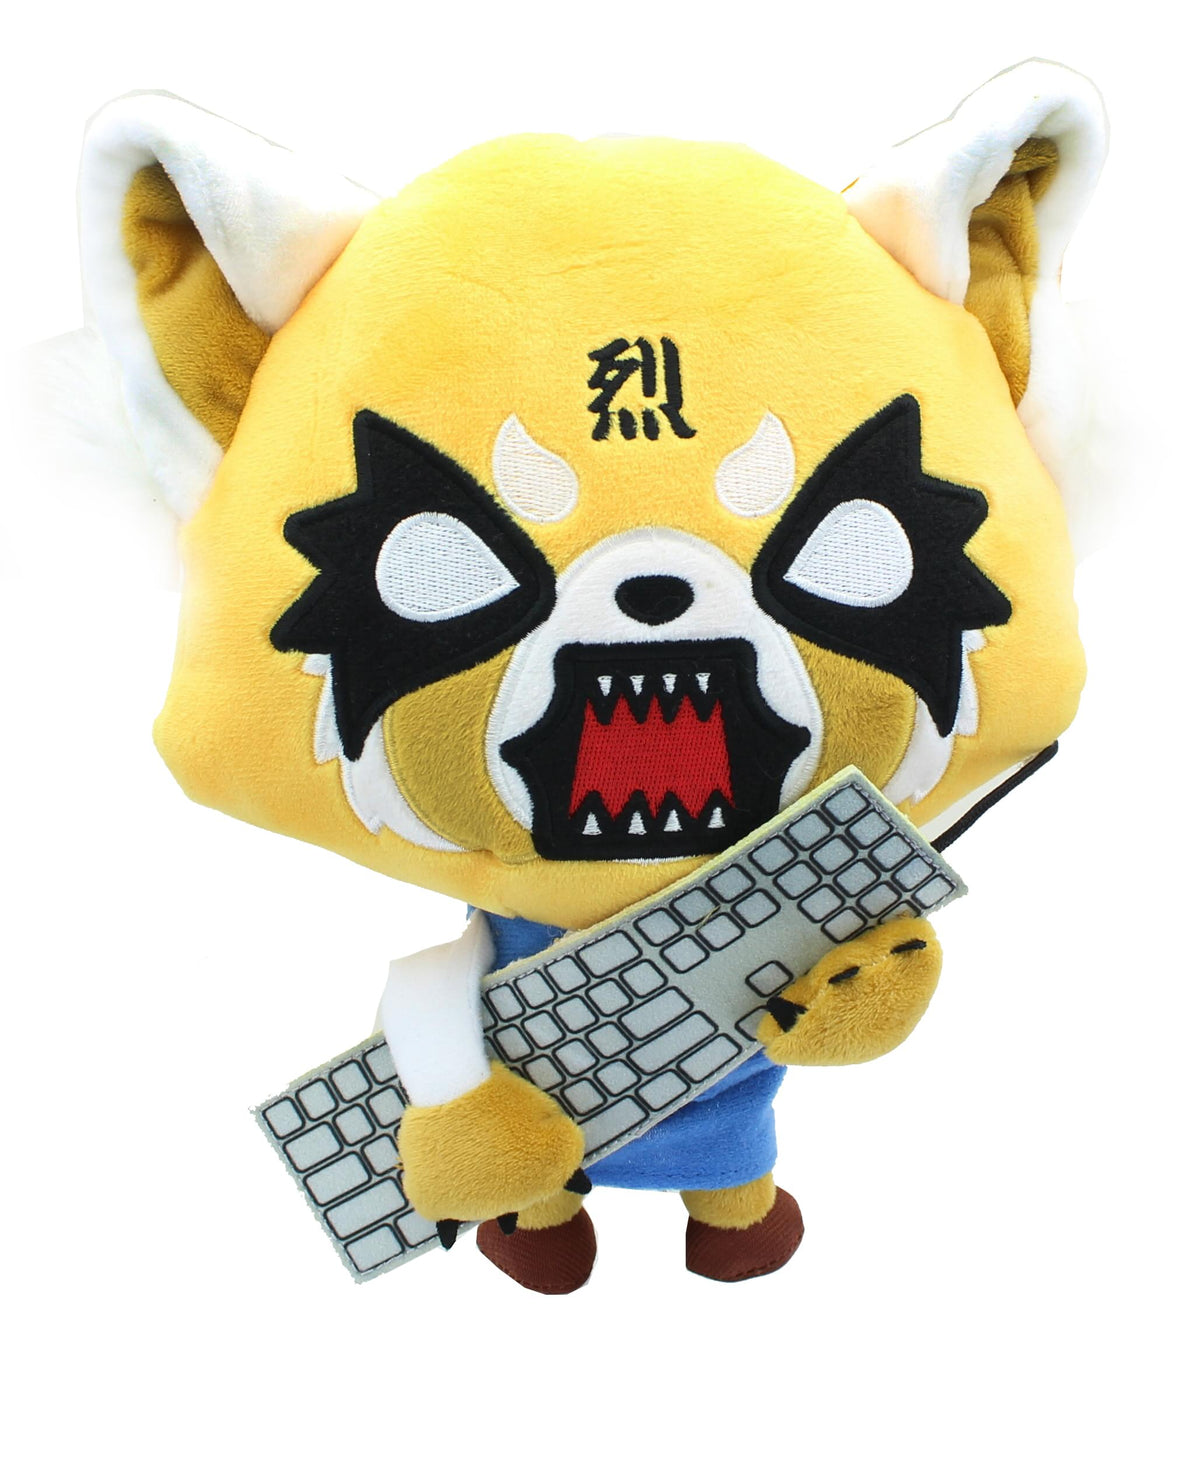 Aggretsuko Rage Face 12 Inch Collectible Plush with Sound